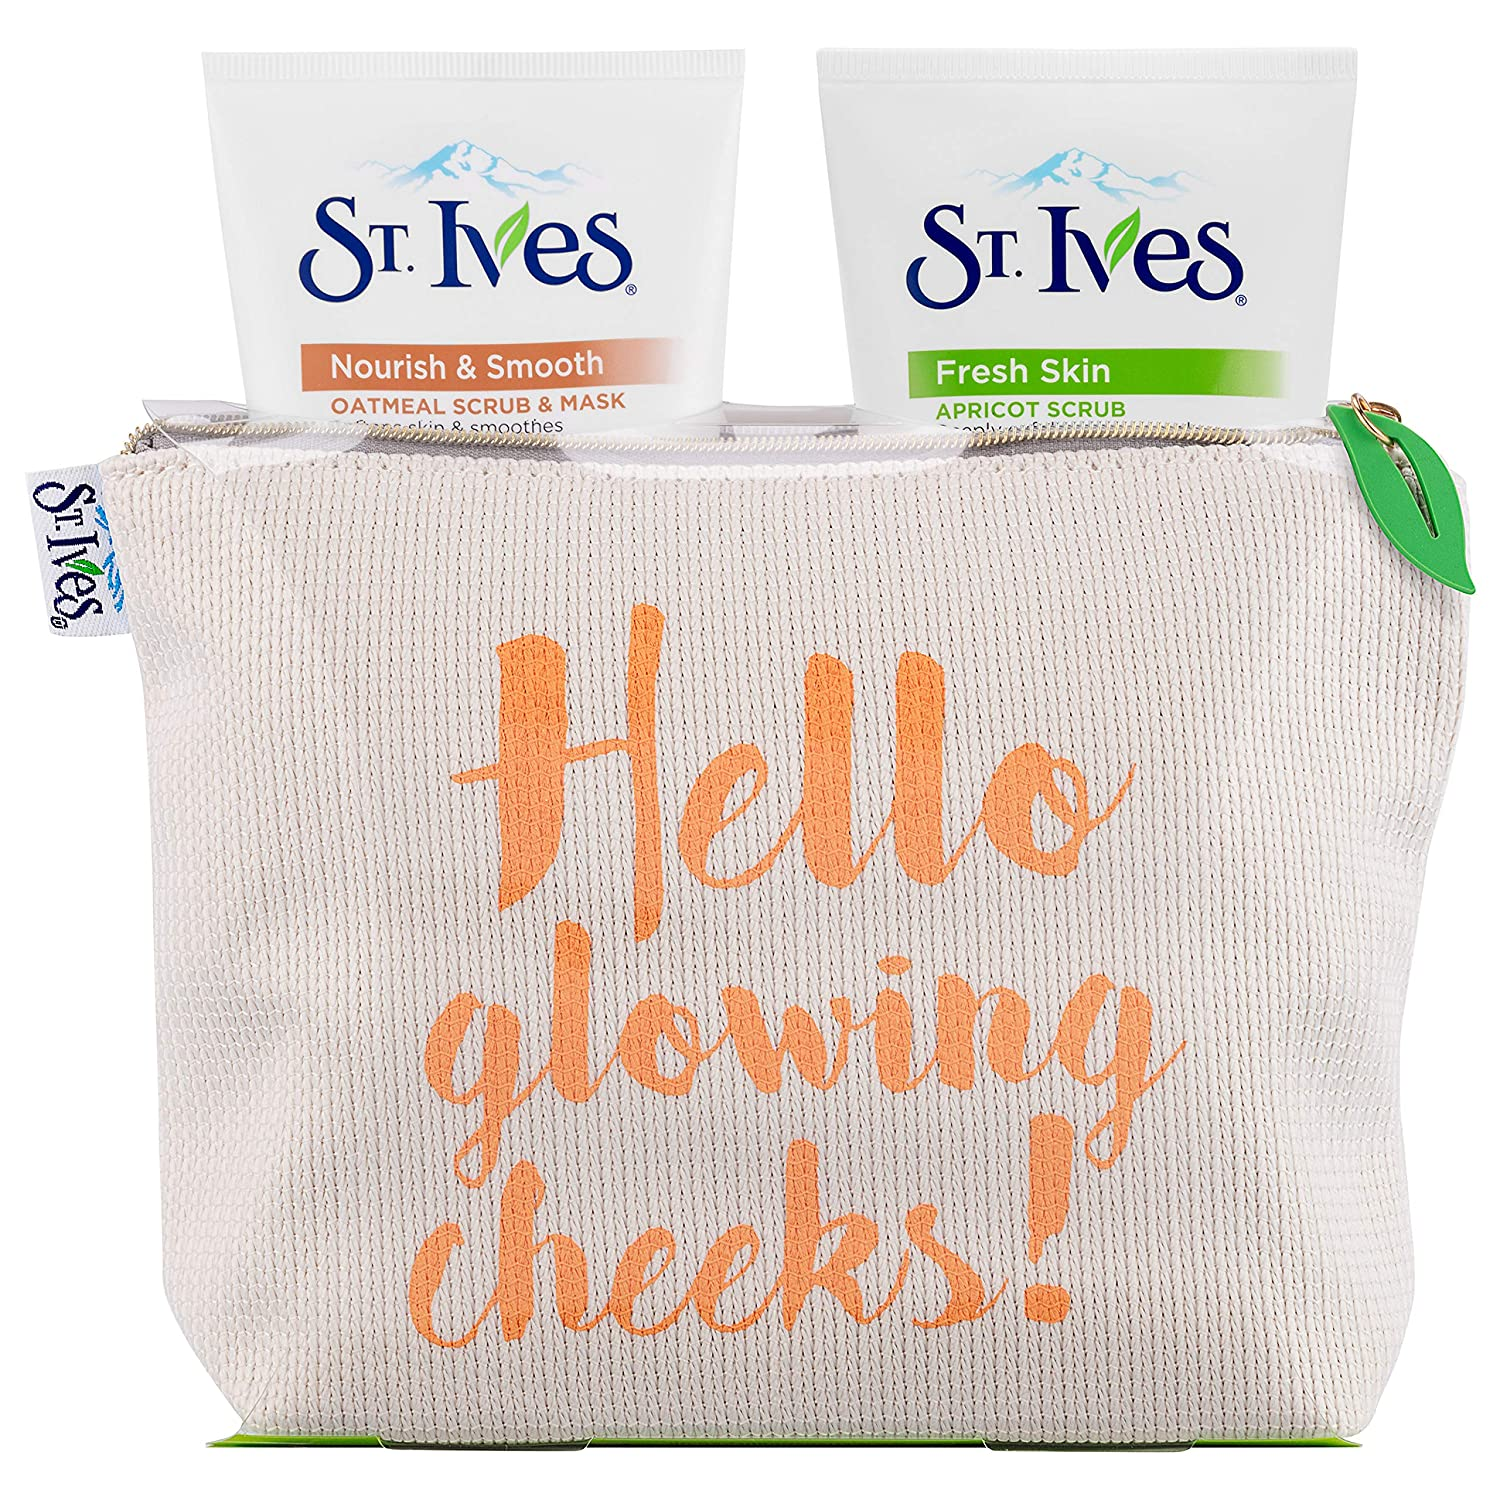 767bdff727c St Ives Hello Cheeks Women s Gift Set with Face Scrub and Face Mask - Gift  Set for Her  Amazon.co.uk  Beauty